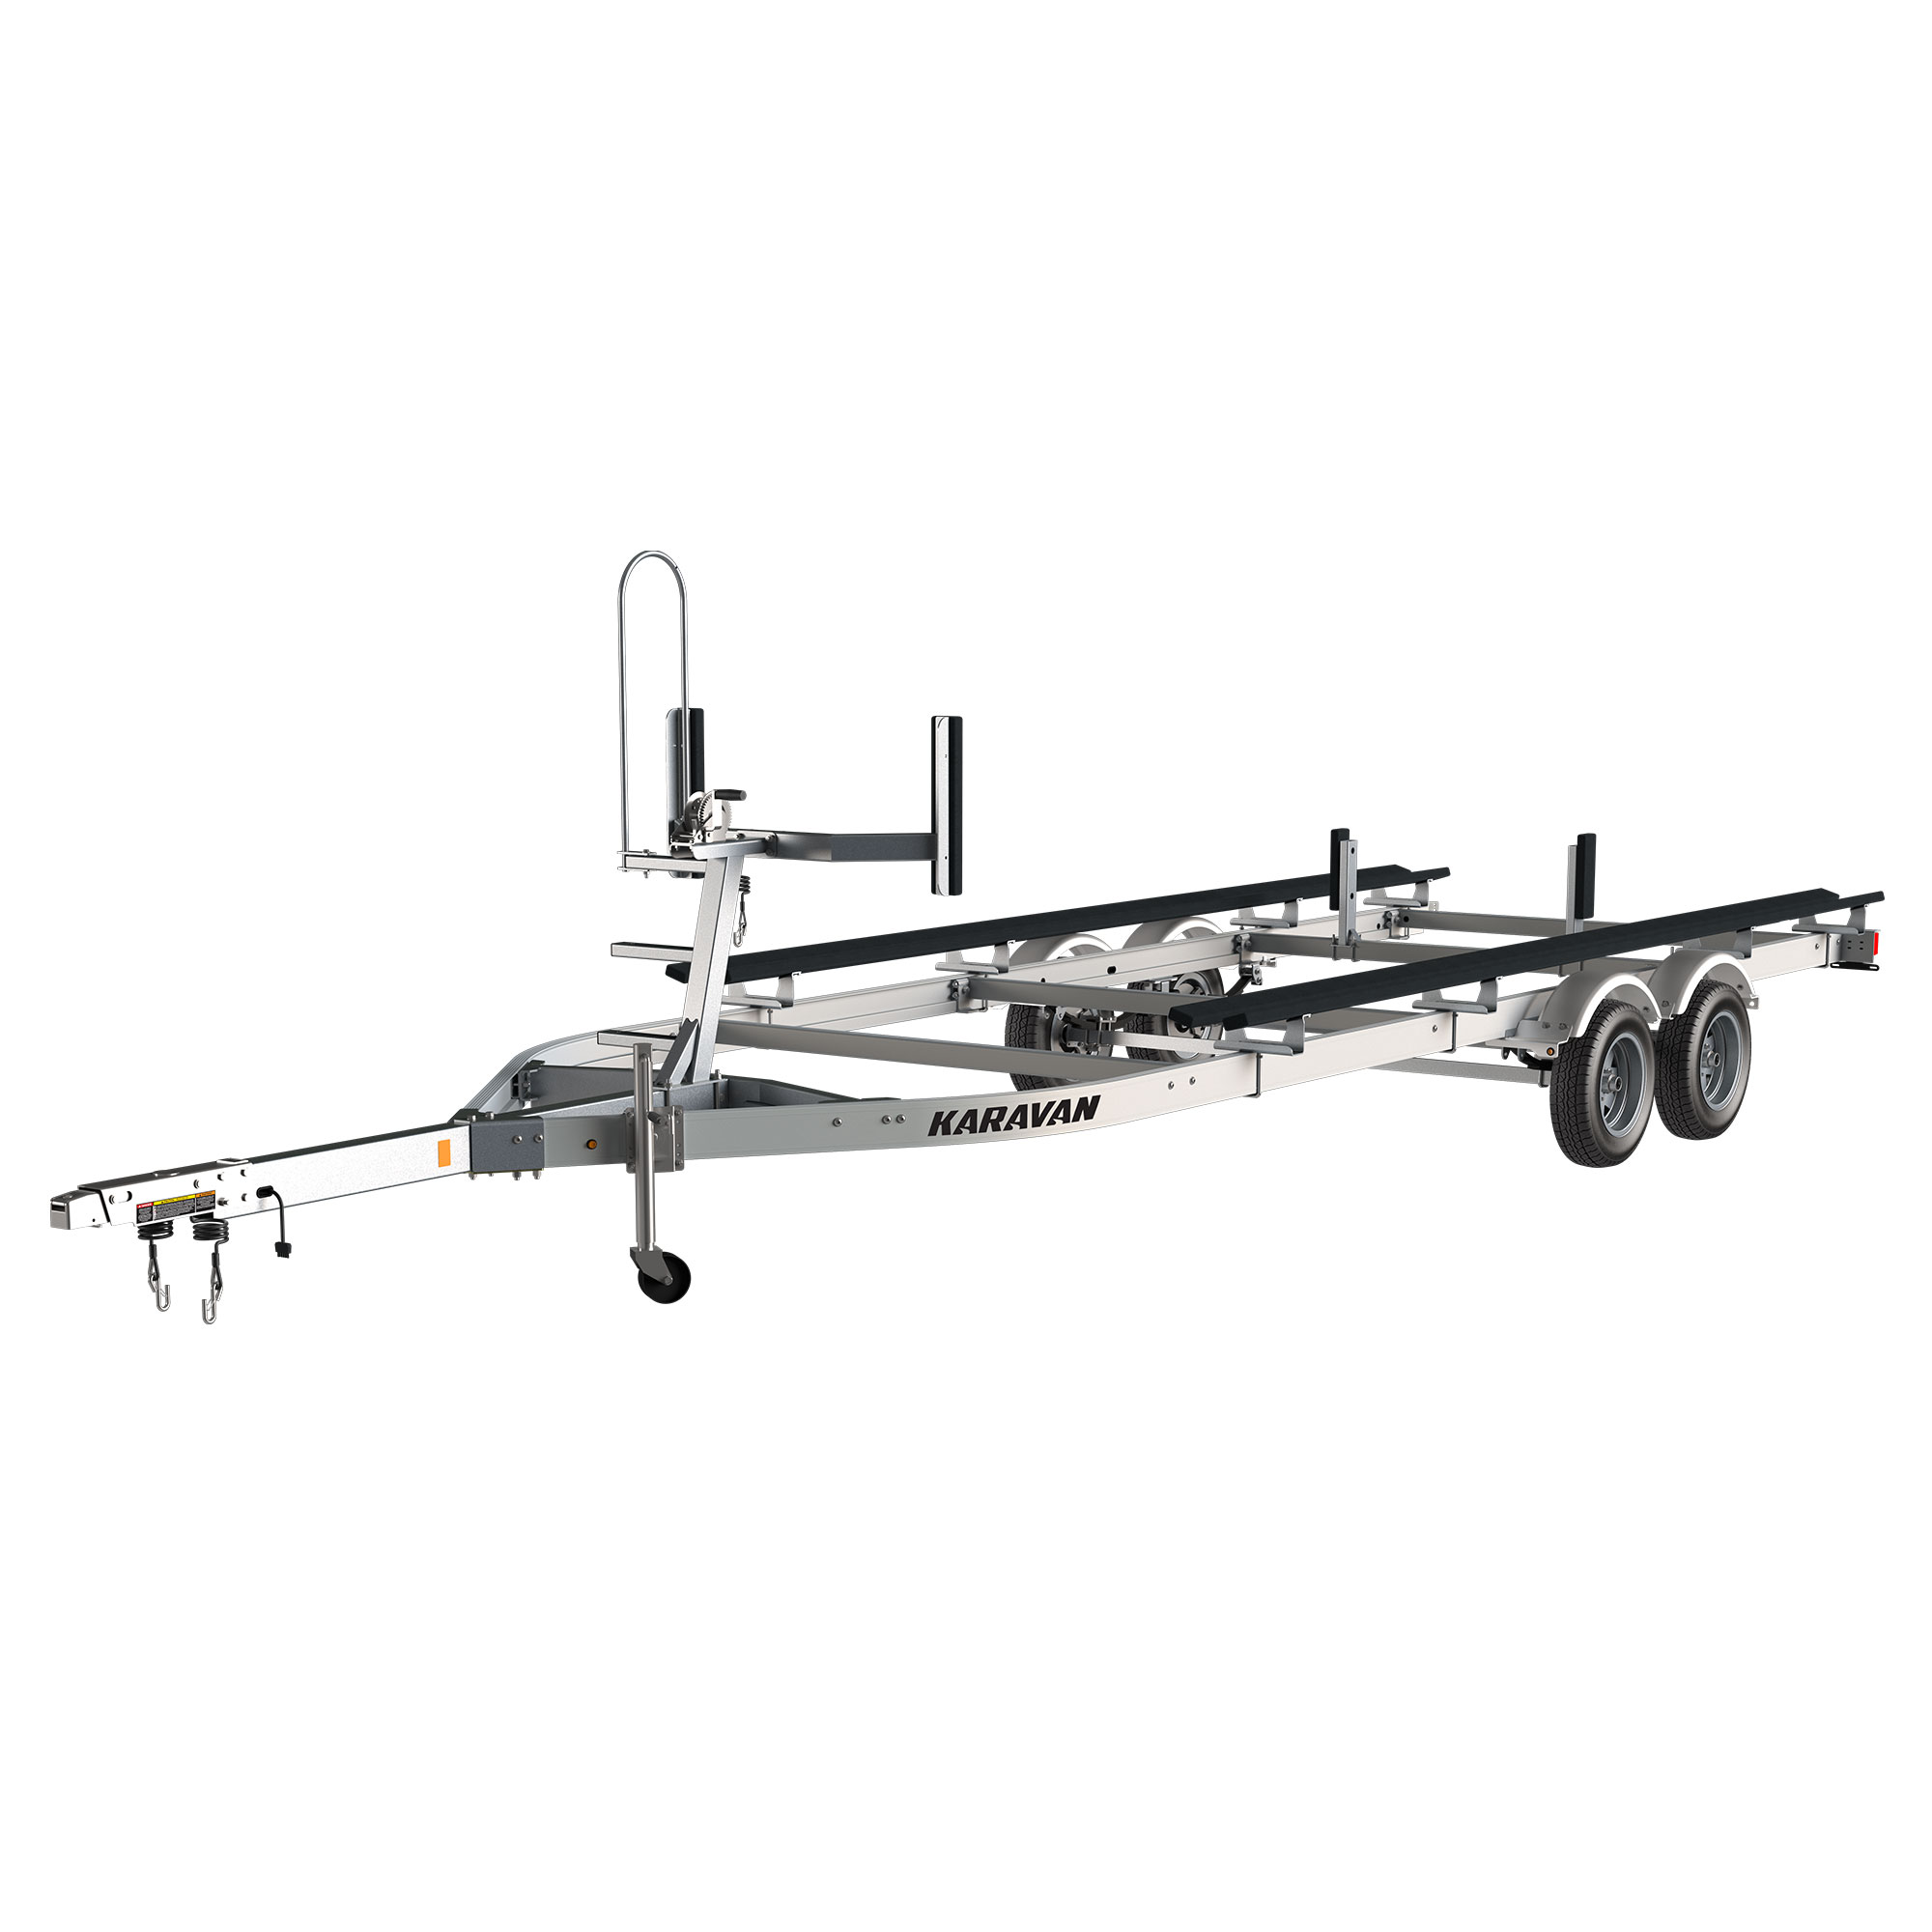 Karavan Trailer's Tandem Axel Aluminum Pontoon Trailer, model number KDPAT-1822